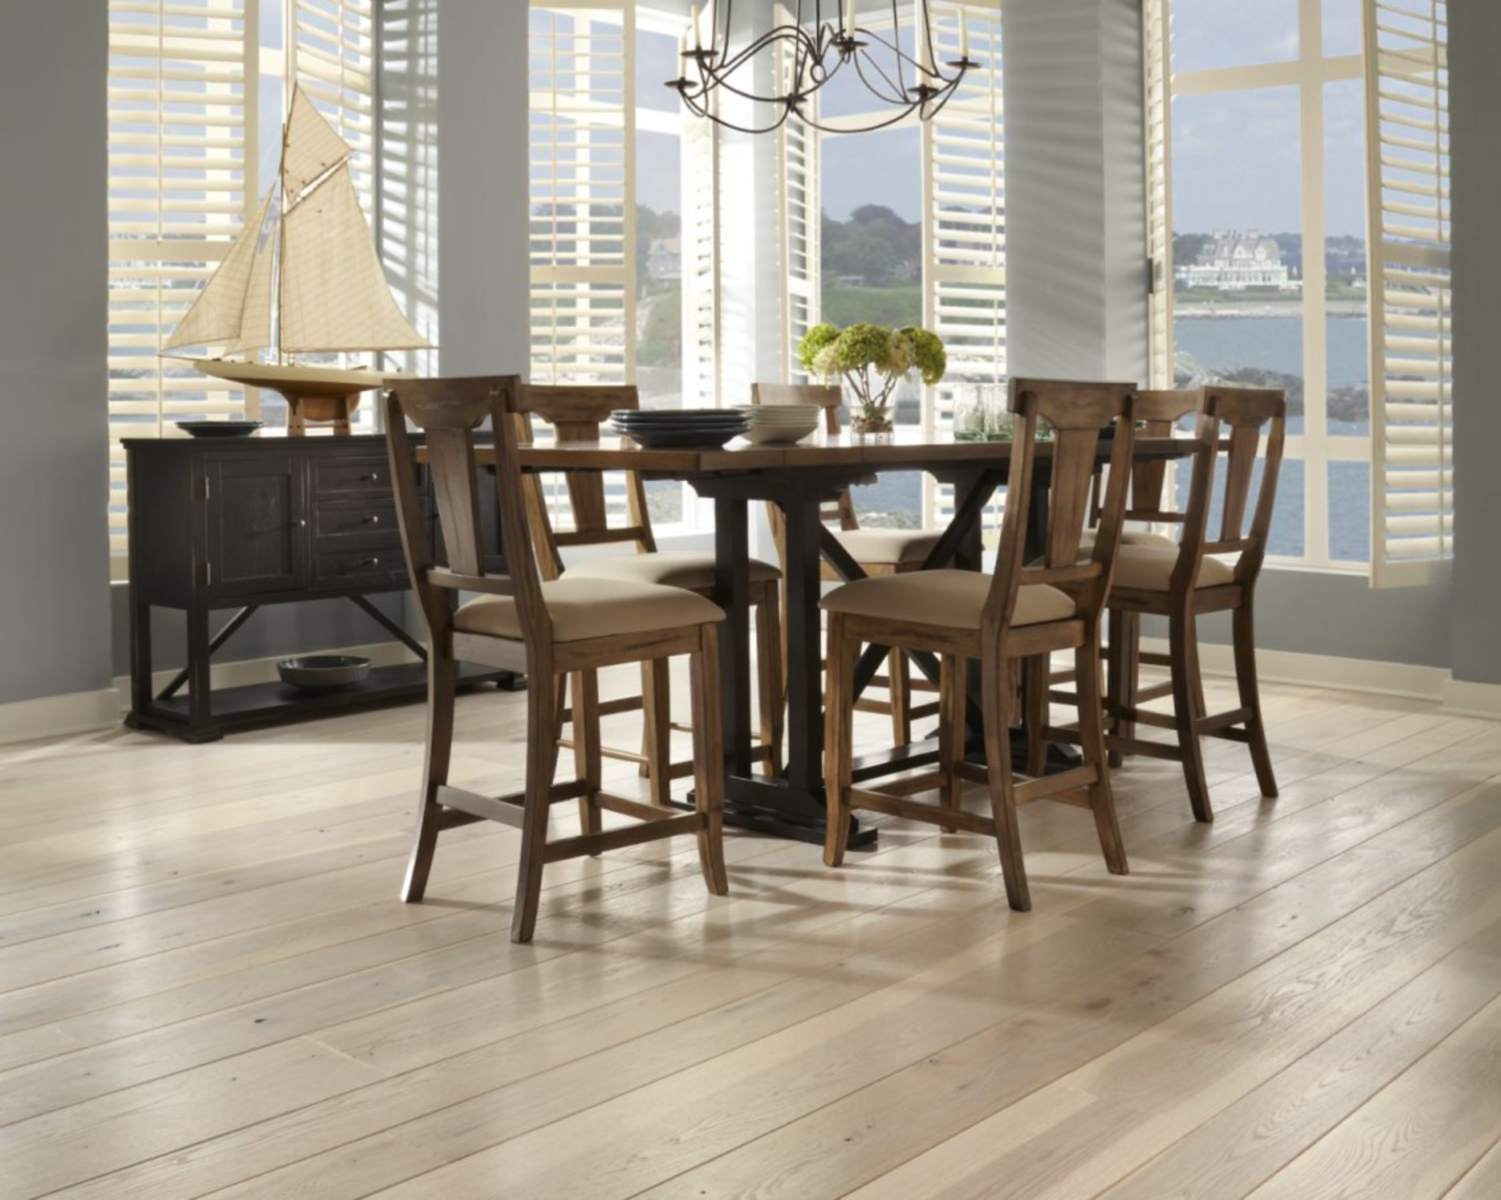 hardwood floor refinishing haddonfield nj of top 5 brands for solid hardwood flooring in a dining room with carlisle hickorys wide plank flooring